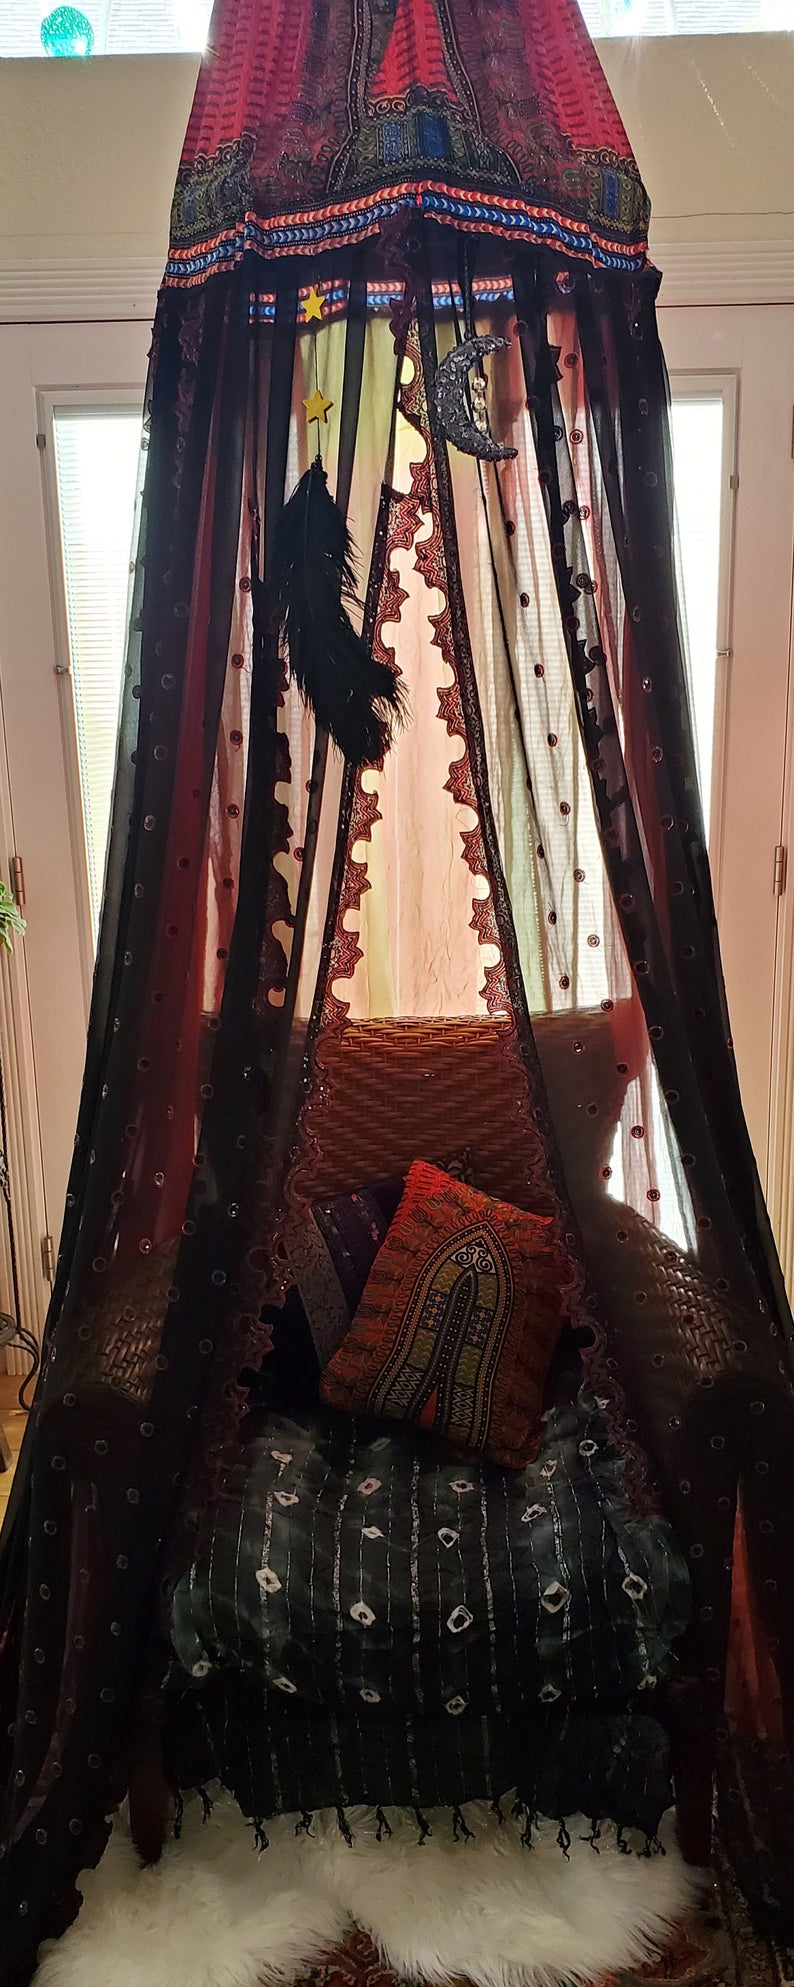 Bohemian, goth, bed canopy, canopy, meditation, fort, tent, voodoo lounge, secret place, gypsy tent, halloween, book nook, party decor